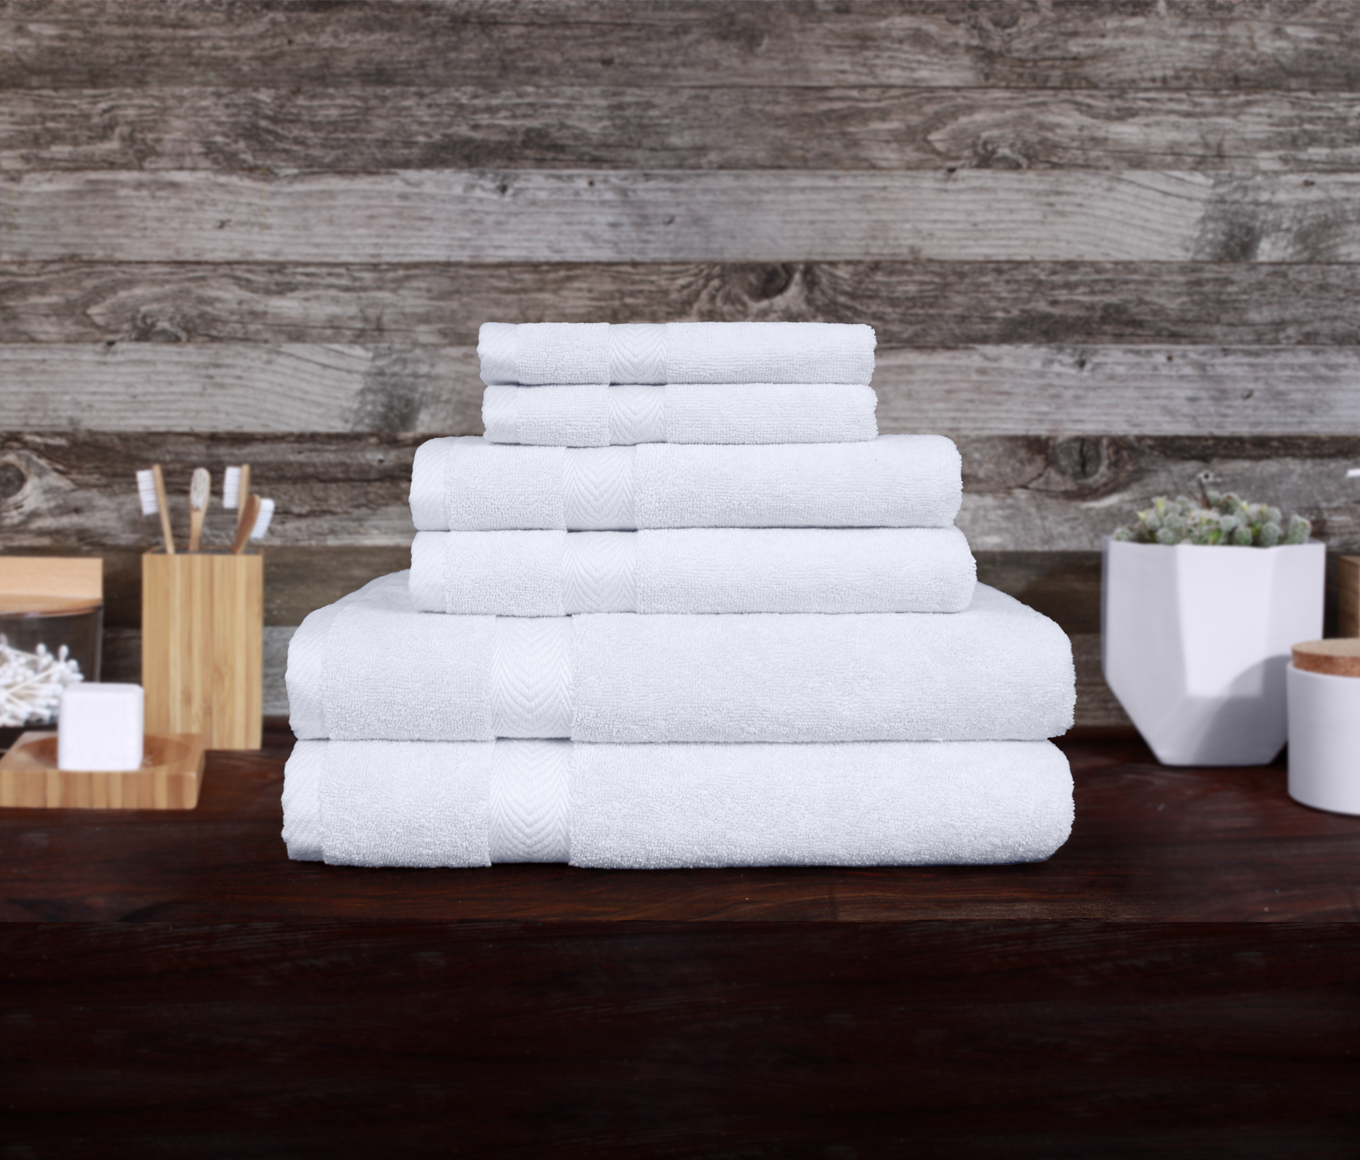 Organic 6pc towel set